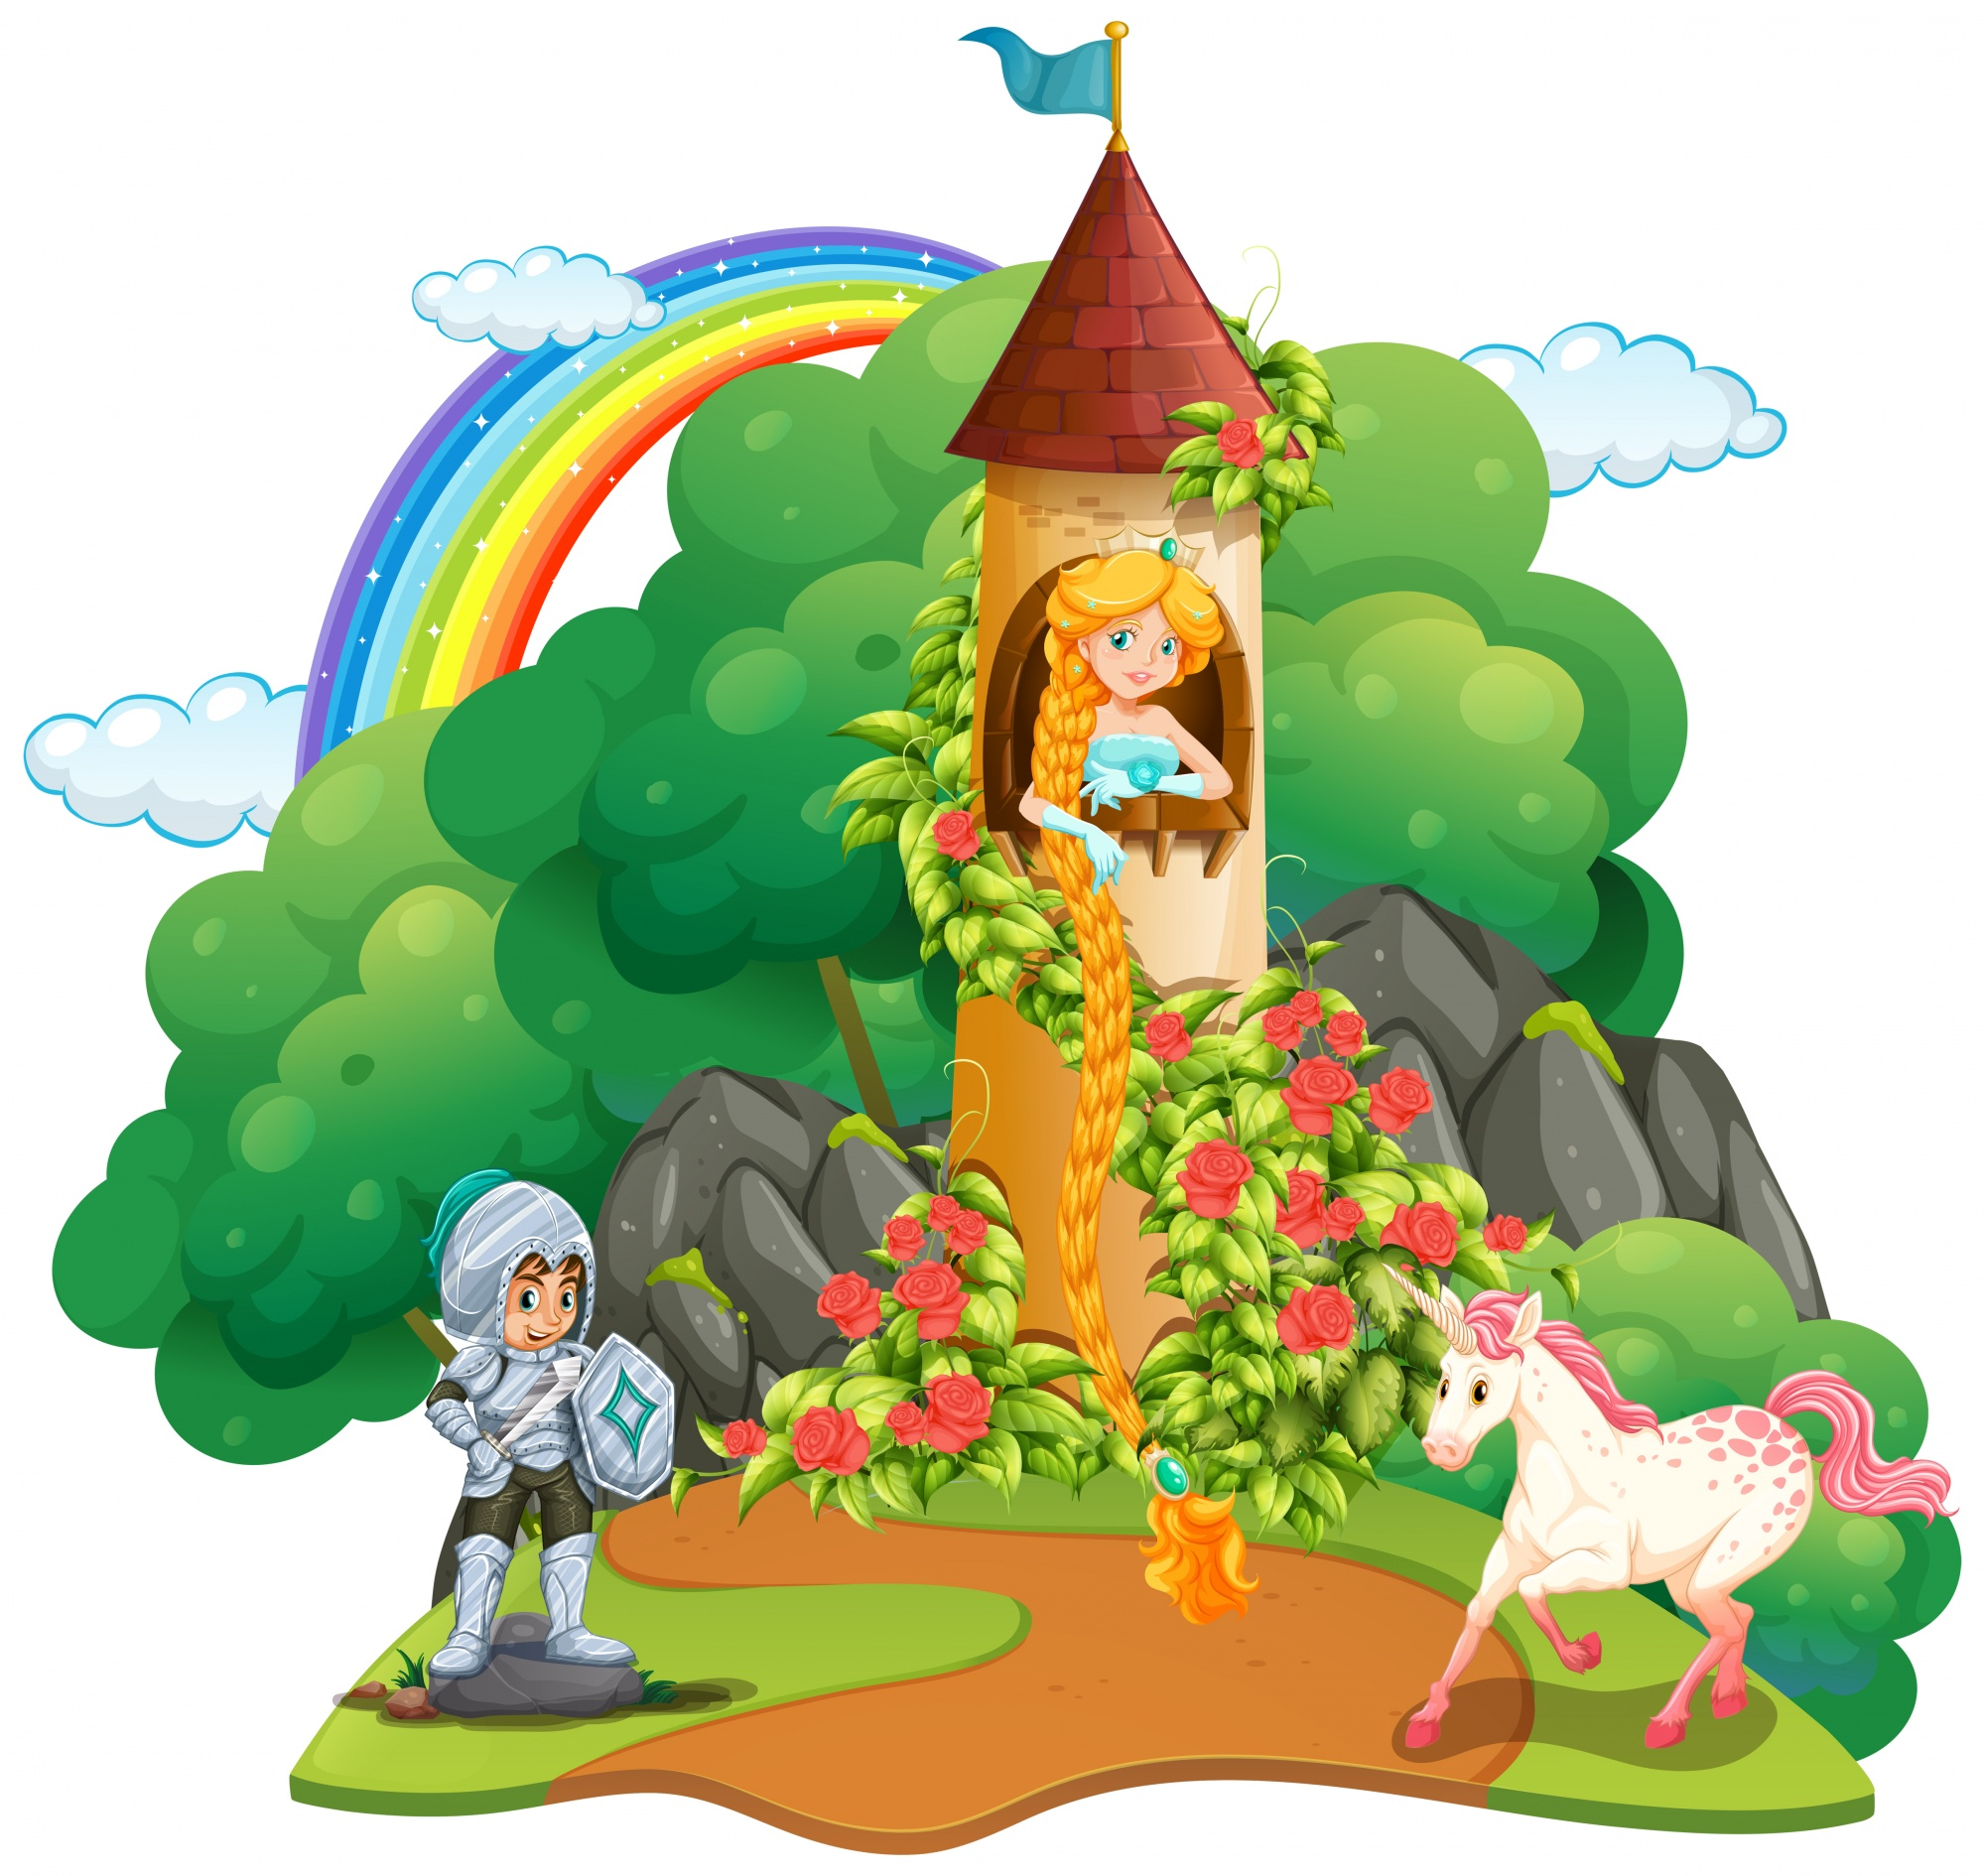 Fairytale scene with knight and princess